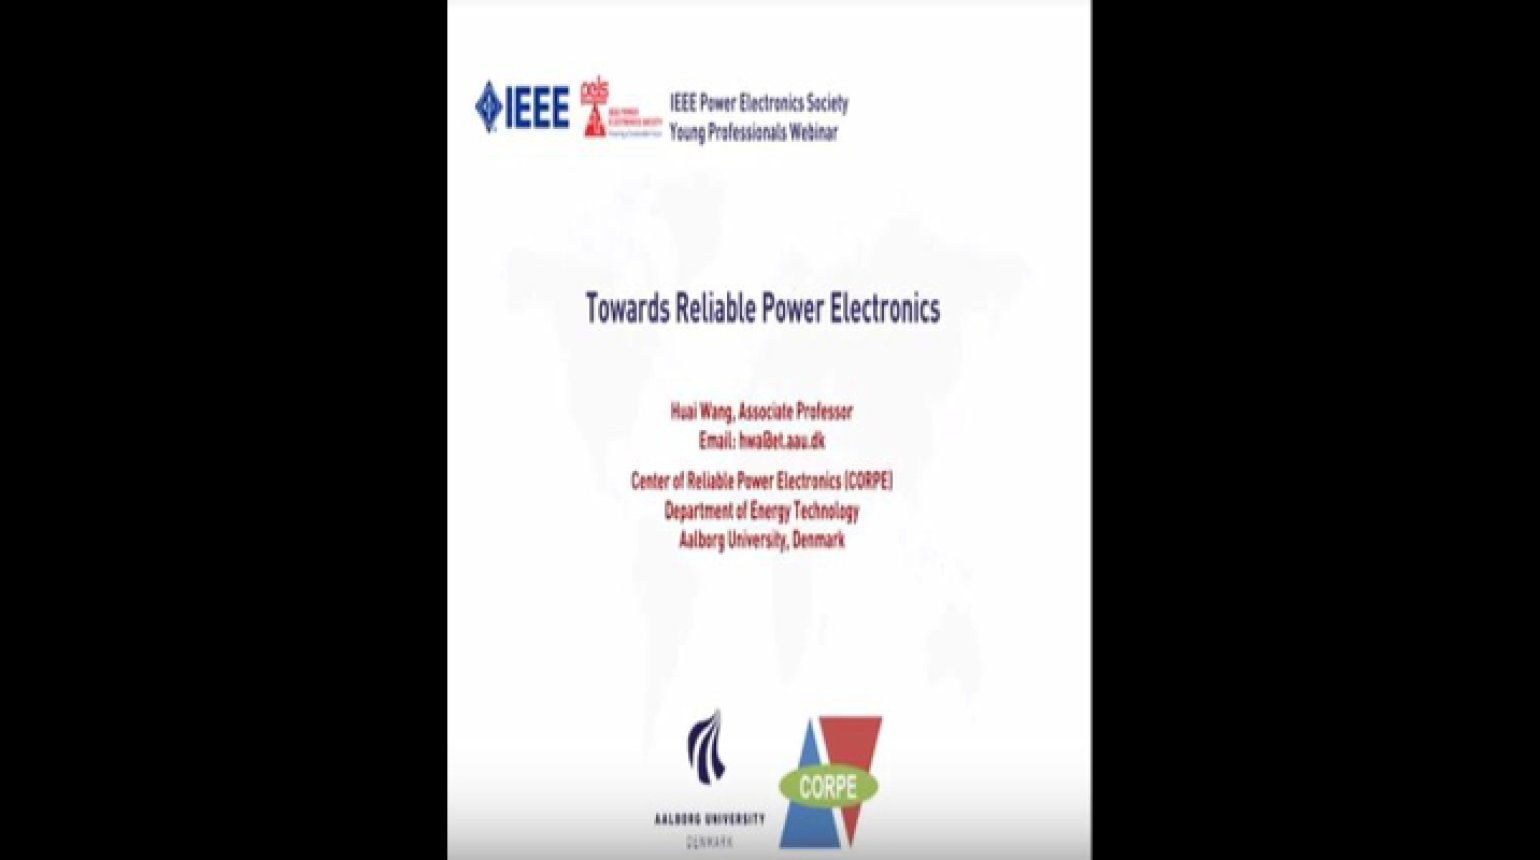 Towards Reliable Power Electronics Video